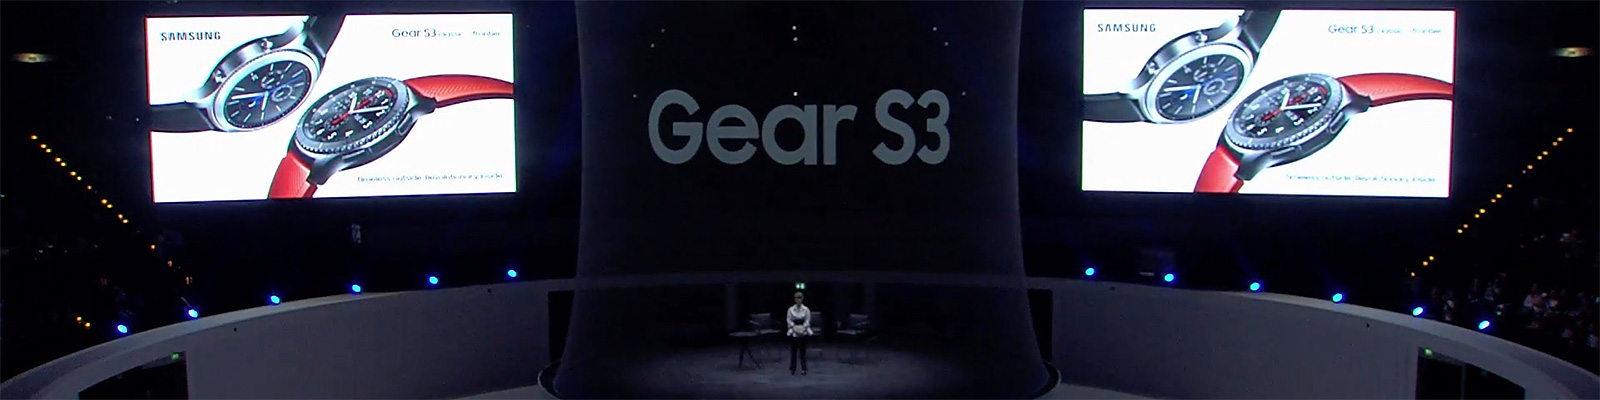 Samsung Gear S3 Live Stream (Official Replay)(Samsung Mobile)